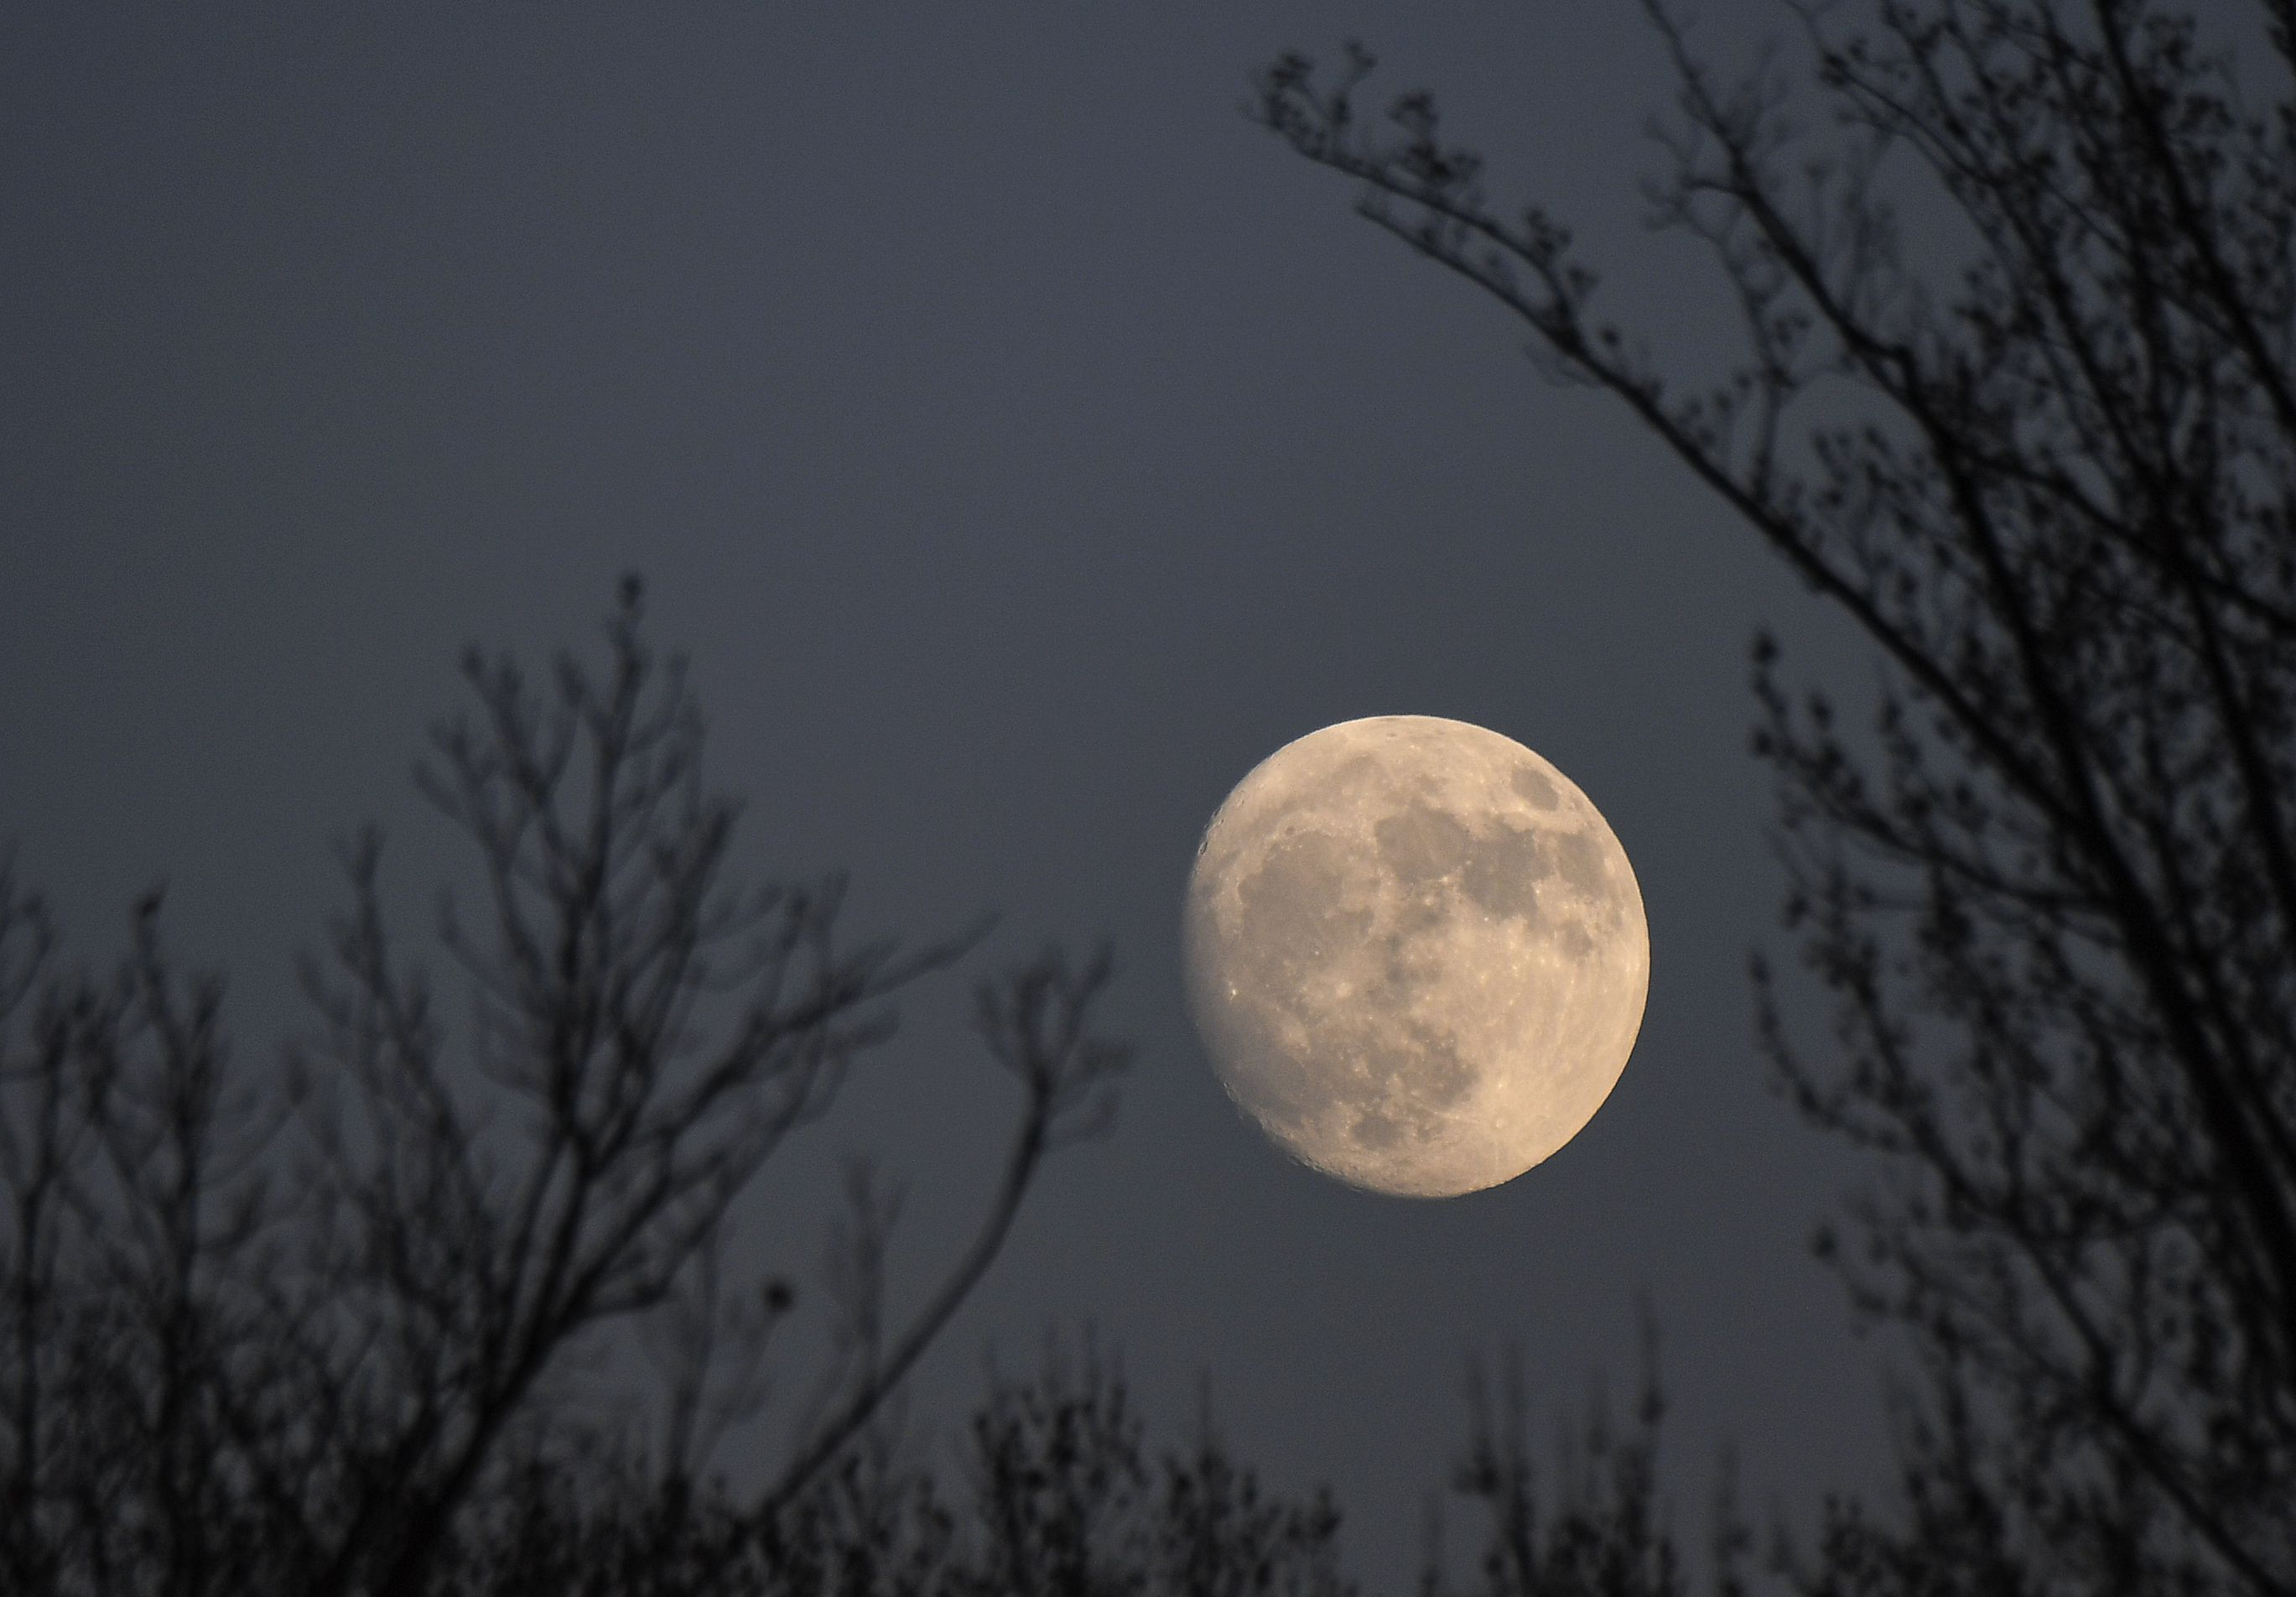 December's Cold Moon Is the Last Full Moon of This Decade